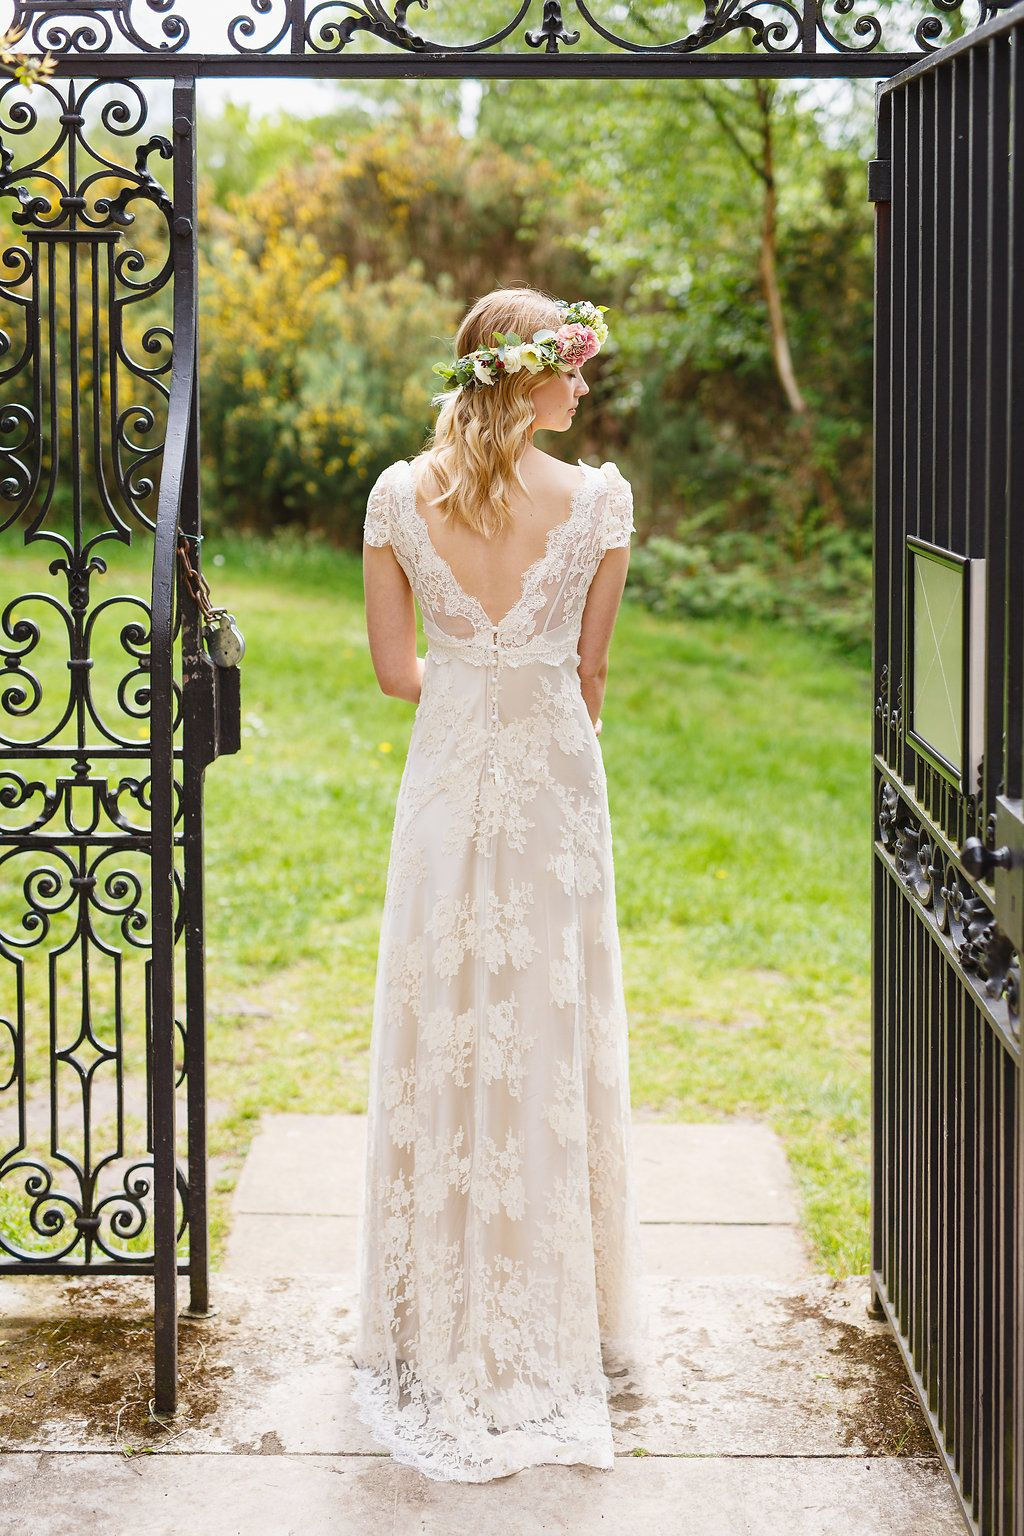 French Lace boho style wedding dress by Dana Bolton alternative